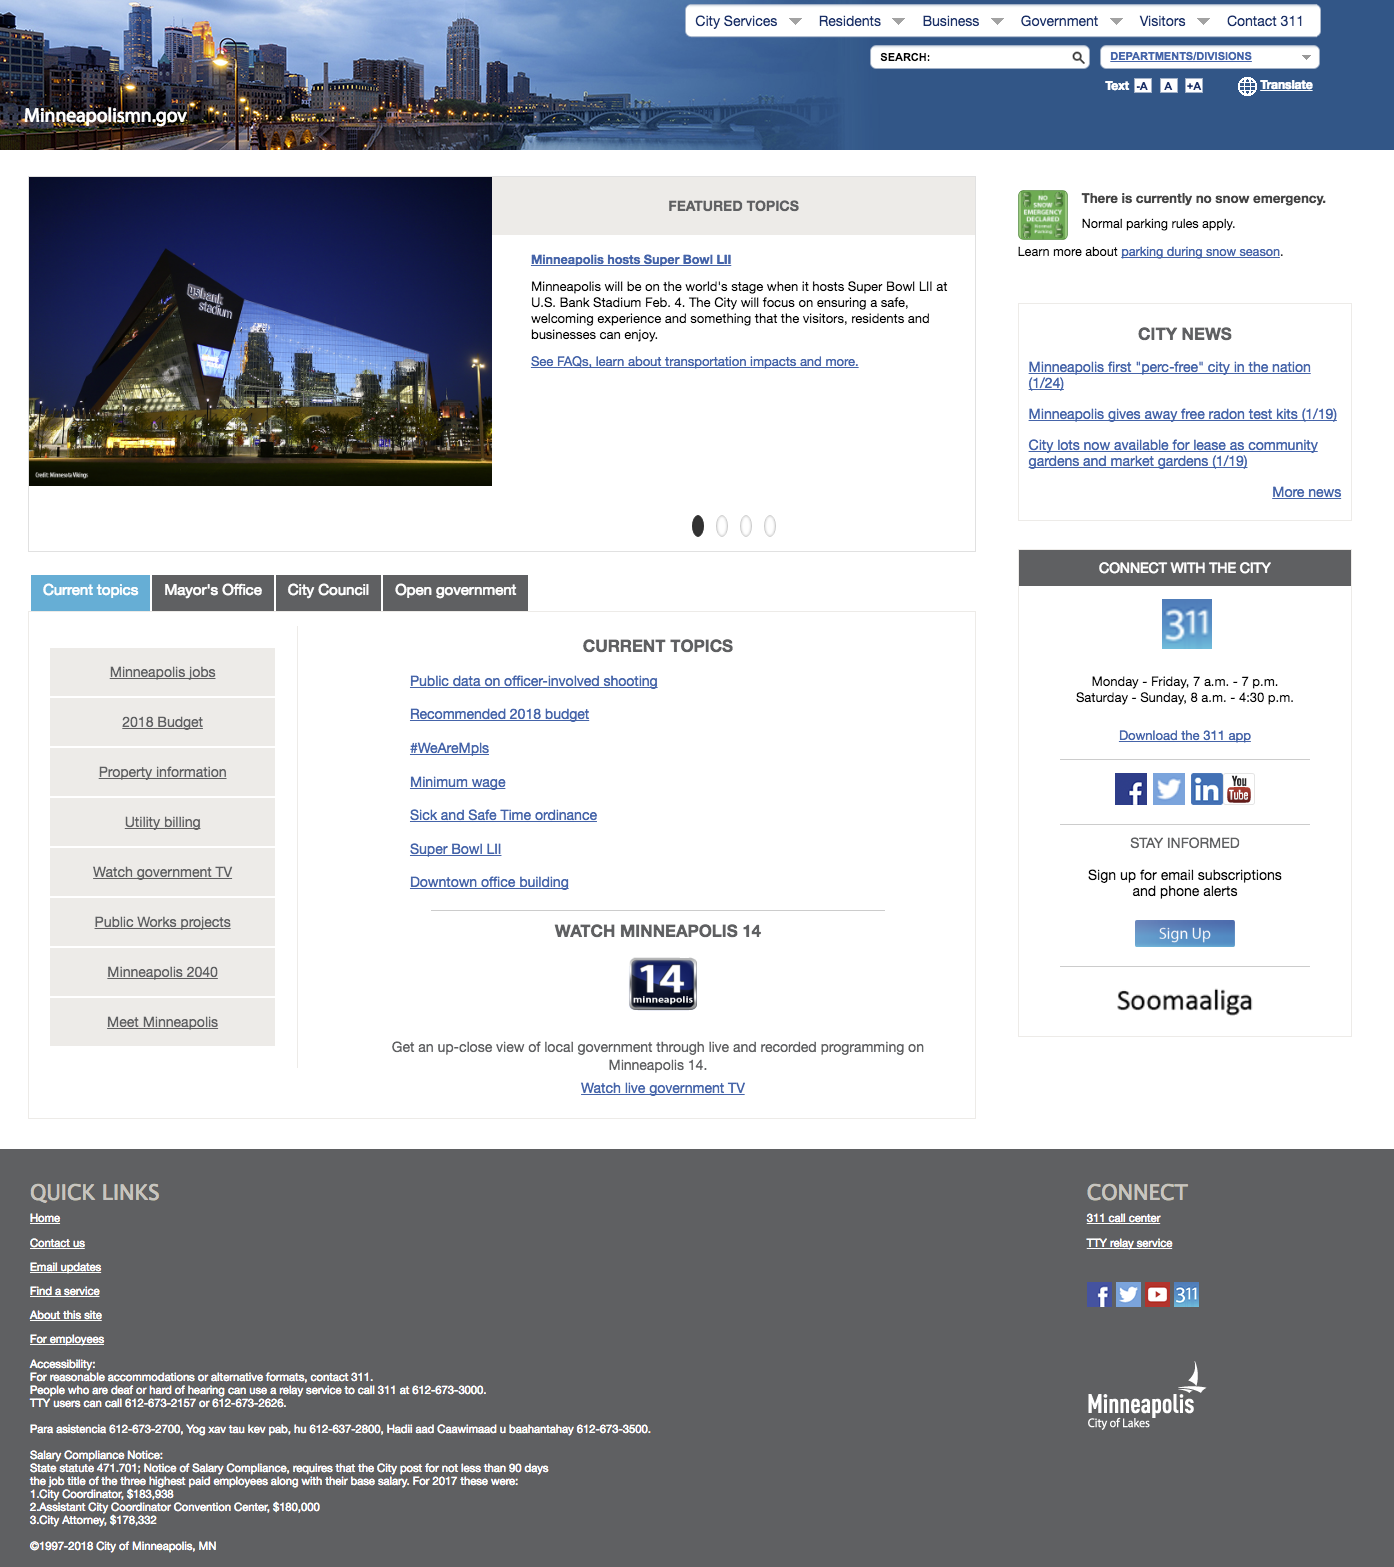 Current City of Minneapolis Website (http://www.ci.minneapolis.mn.us/)